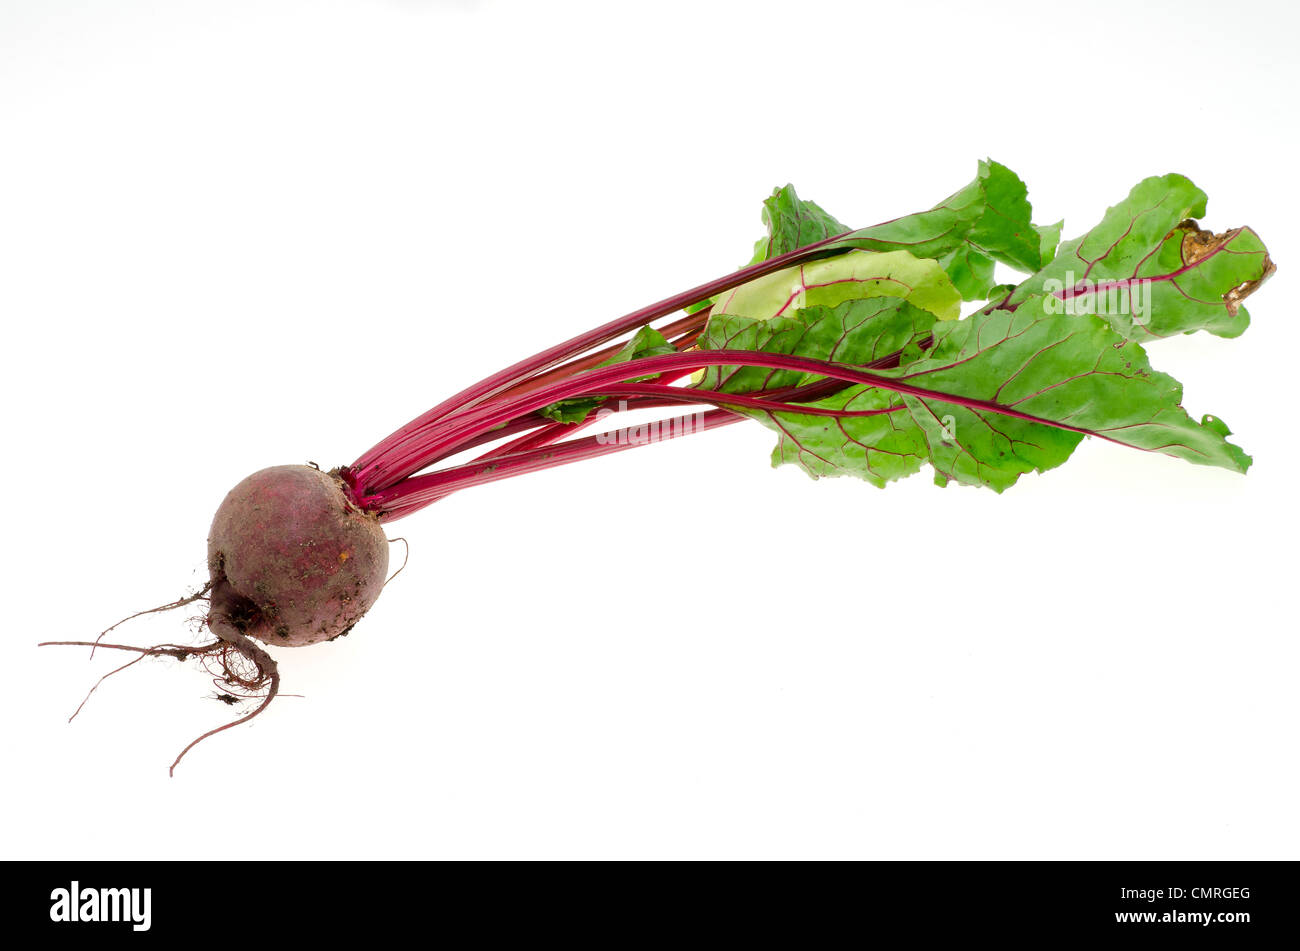 Fresh beetroot just dug from the garden - studio shot with a white background - Stock Image